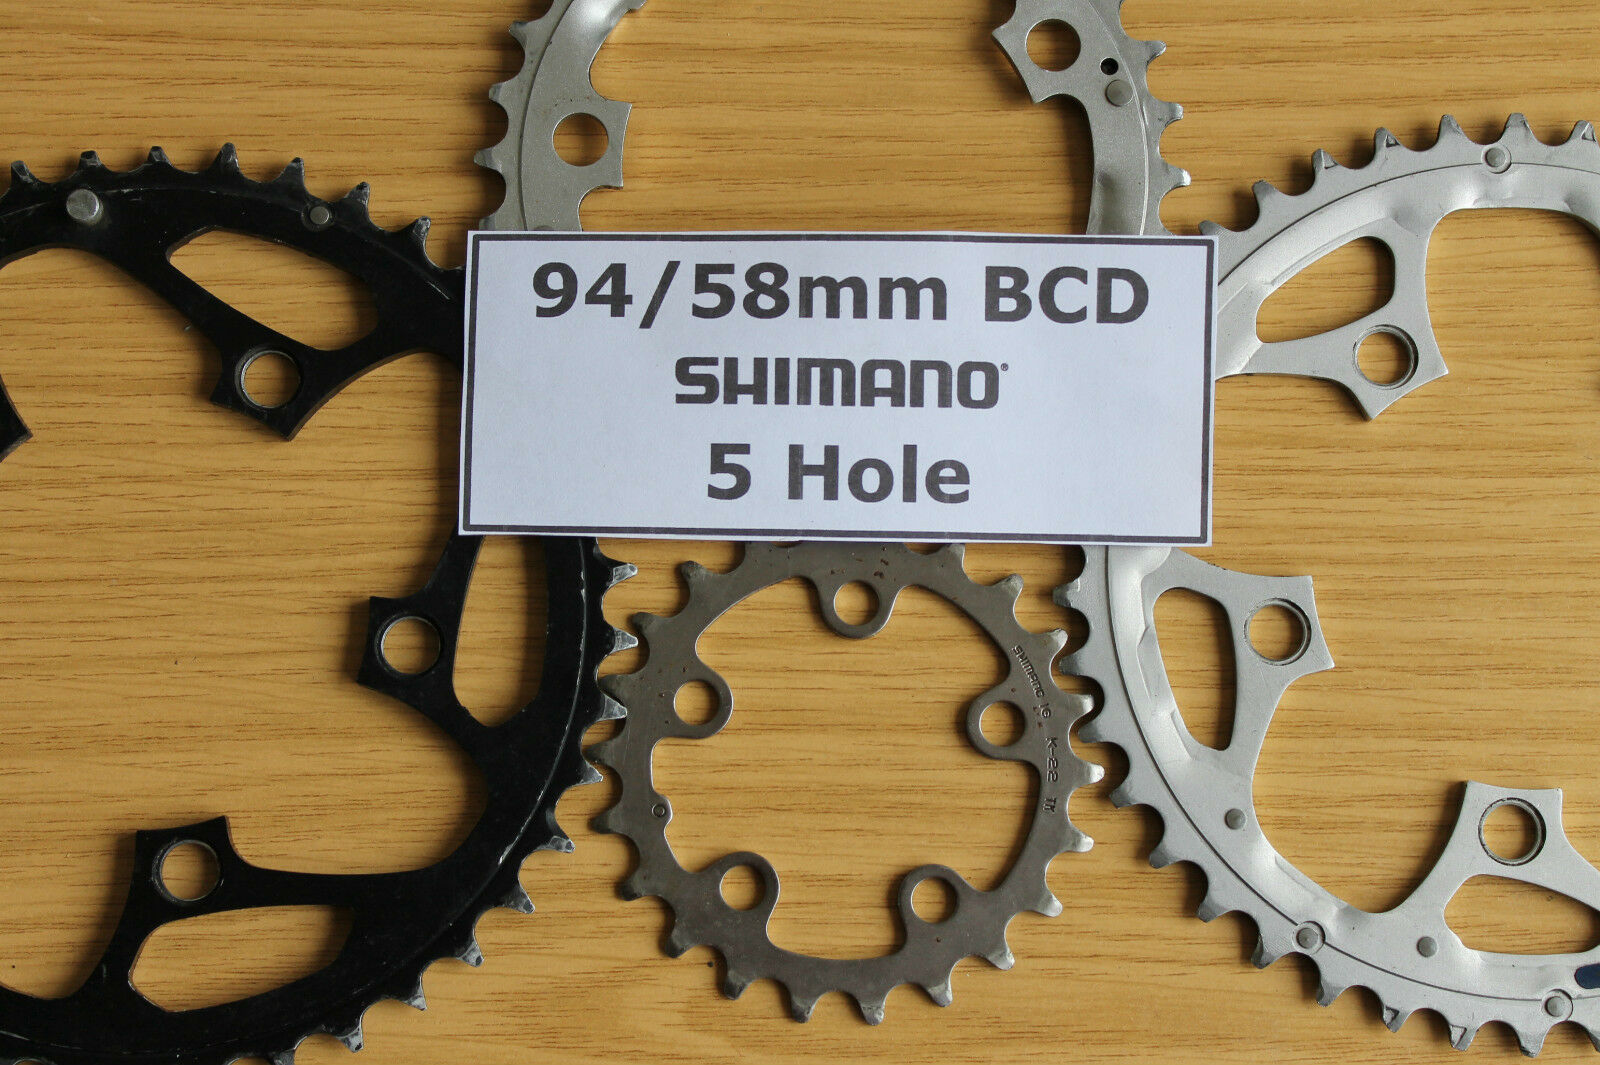 Shimano Chainrings 5 Hole 58 94 mm BCD PCD Chain Rings Chainring Ring Retro